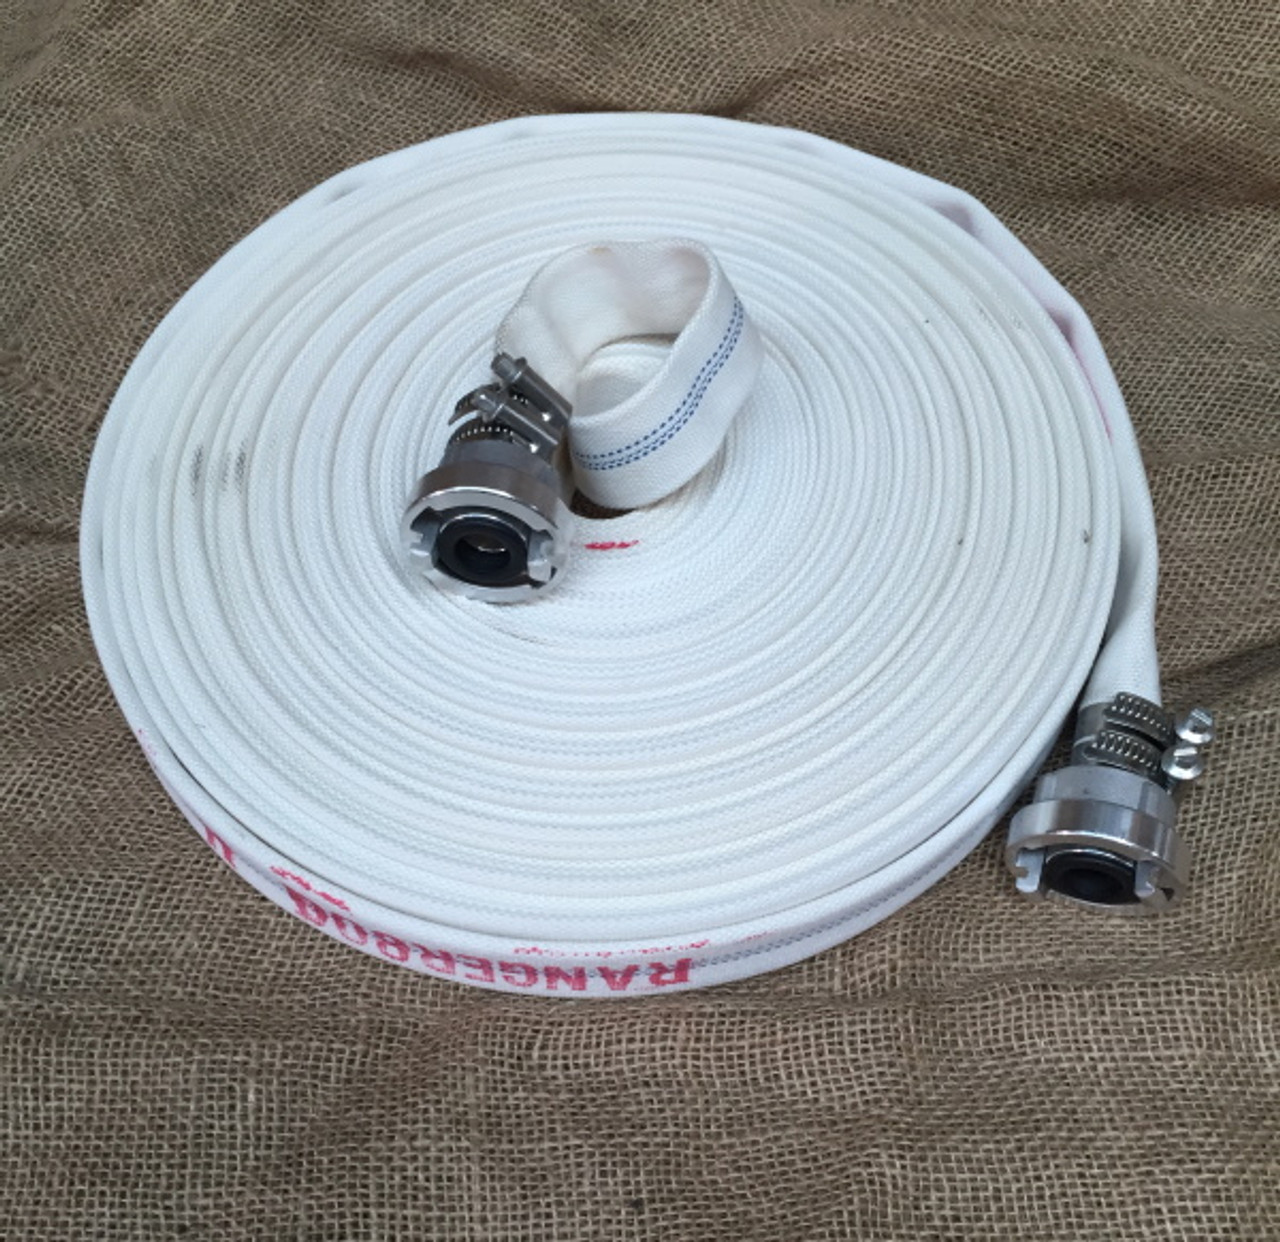 25mm Percolating fire hose x 30m with Storz fittings